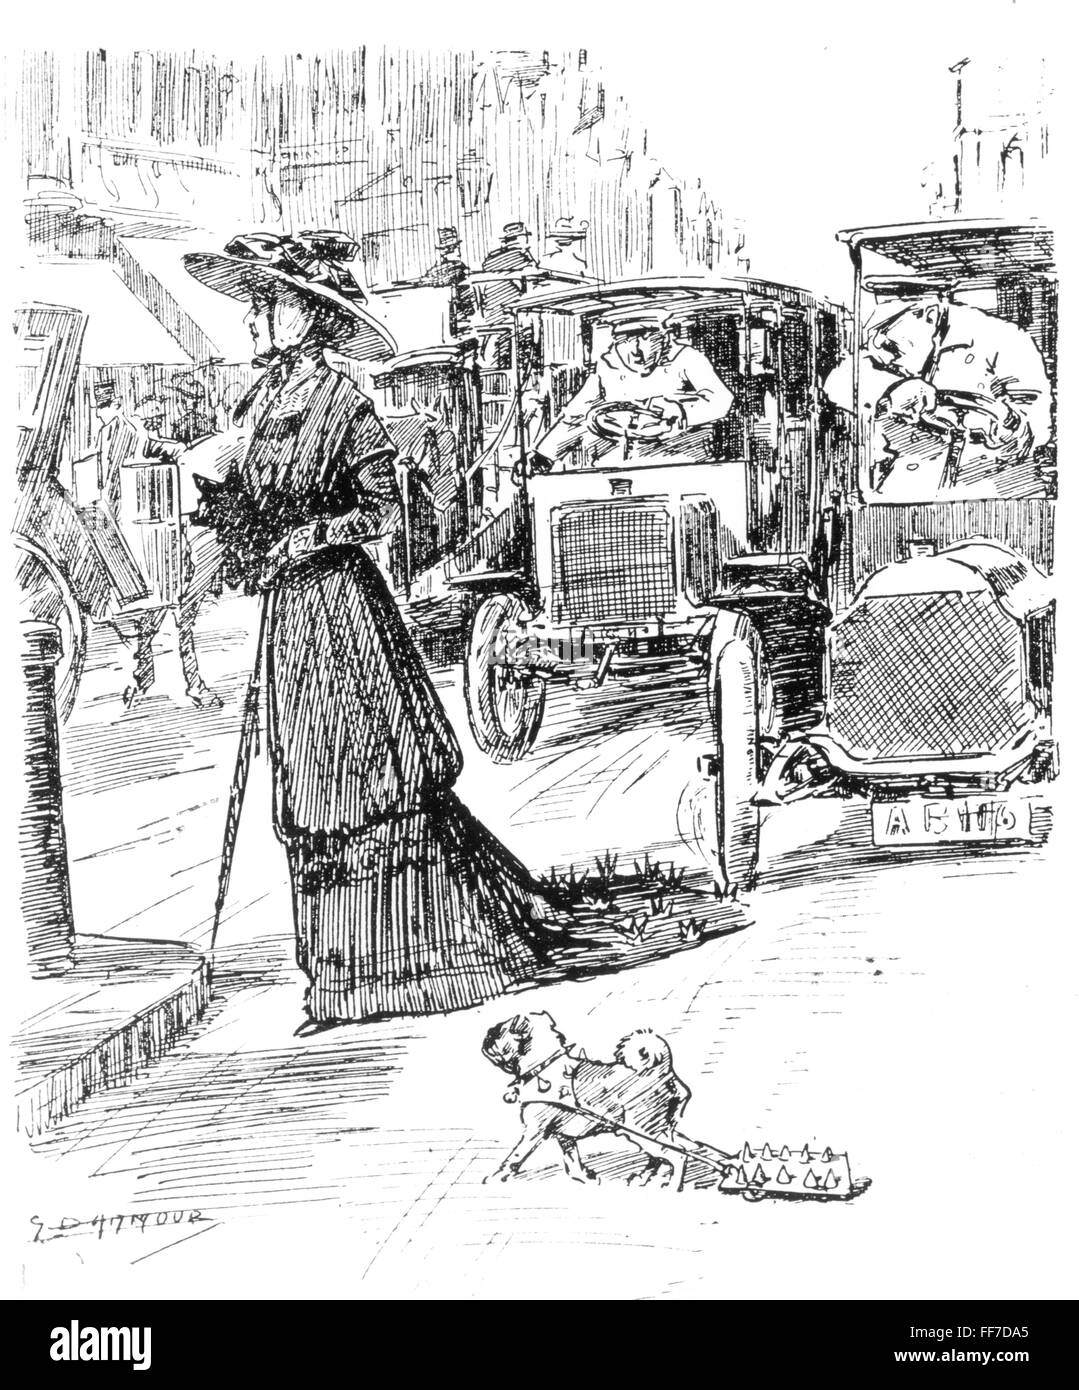 fashion, early 20th century / turn of the century, fashionably dressed lady with train crossing street, drawing, - Stock Image